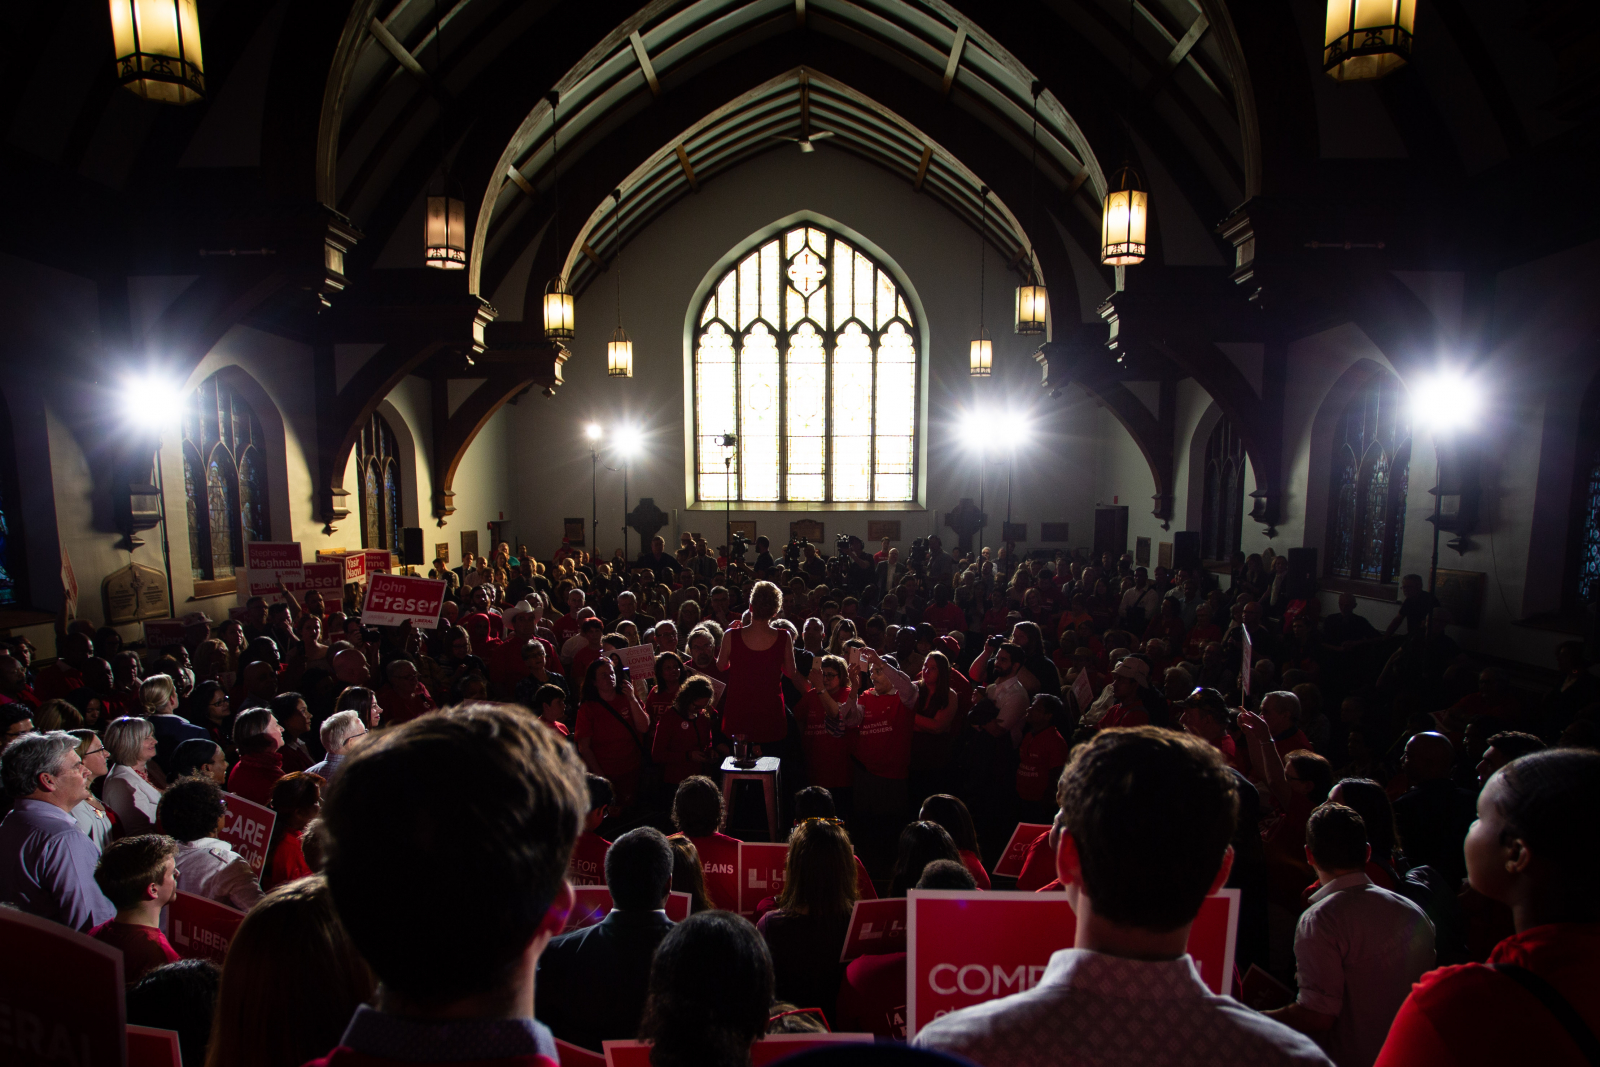 Ontario Liberal Leader and incumbent Premier Kathleen Wynne addresses supporters at All Saints, a former church, in Ottawa on May 9, 2018. Photo by Alex Tétreault